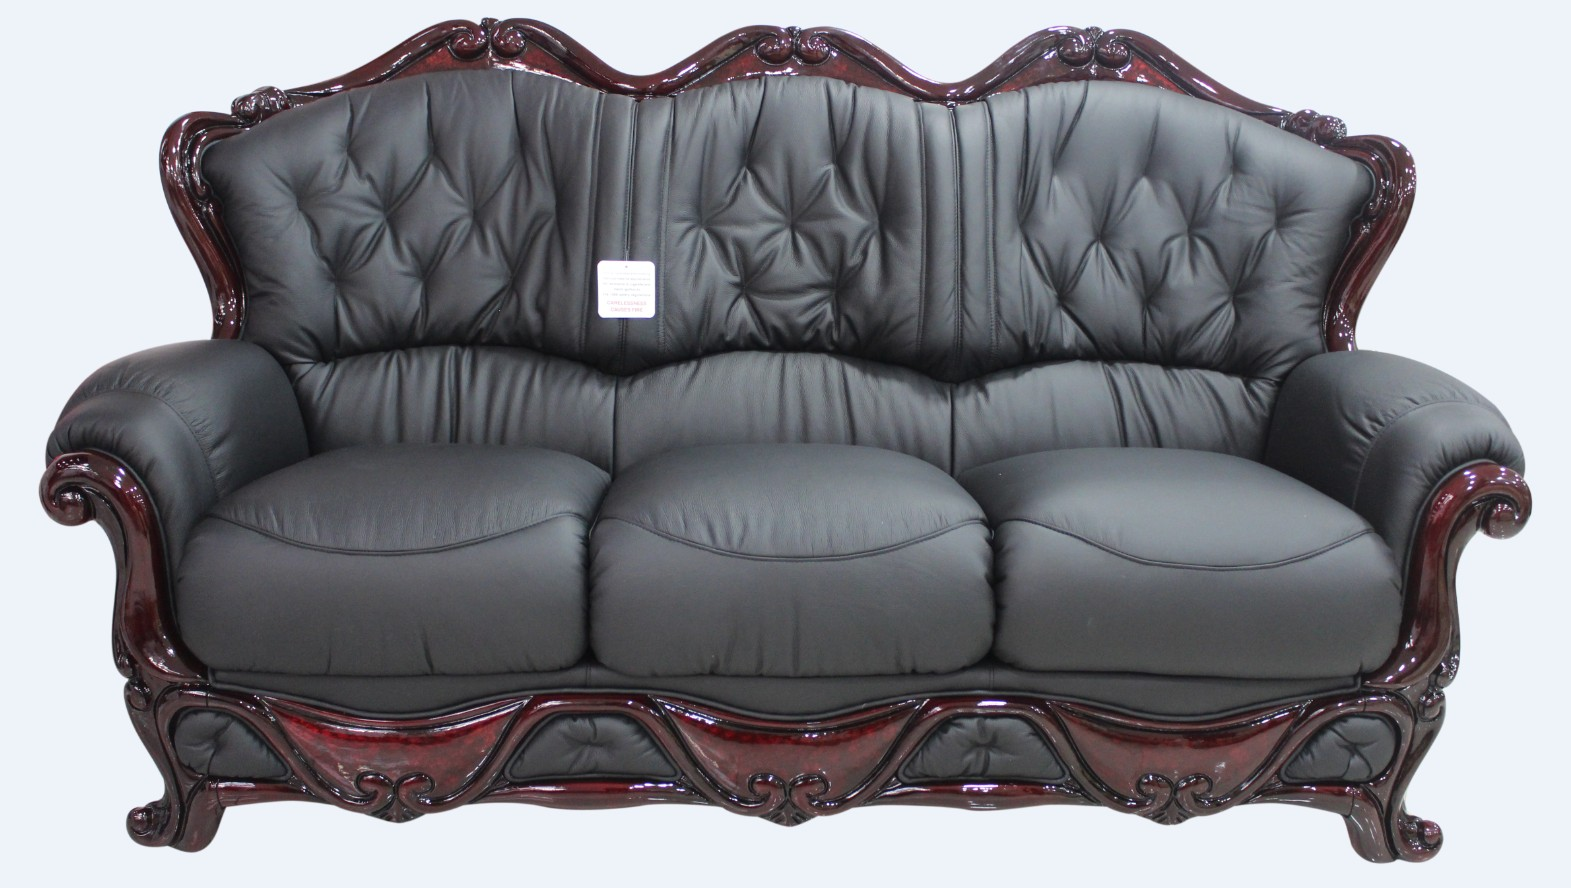 Dante 3 Seater Italian Leather Sofa Settee Offer Black